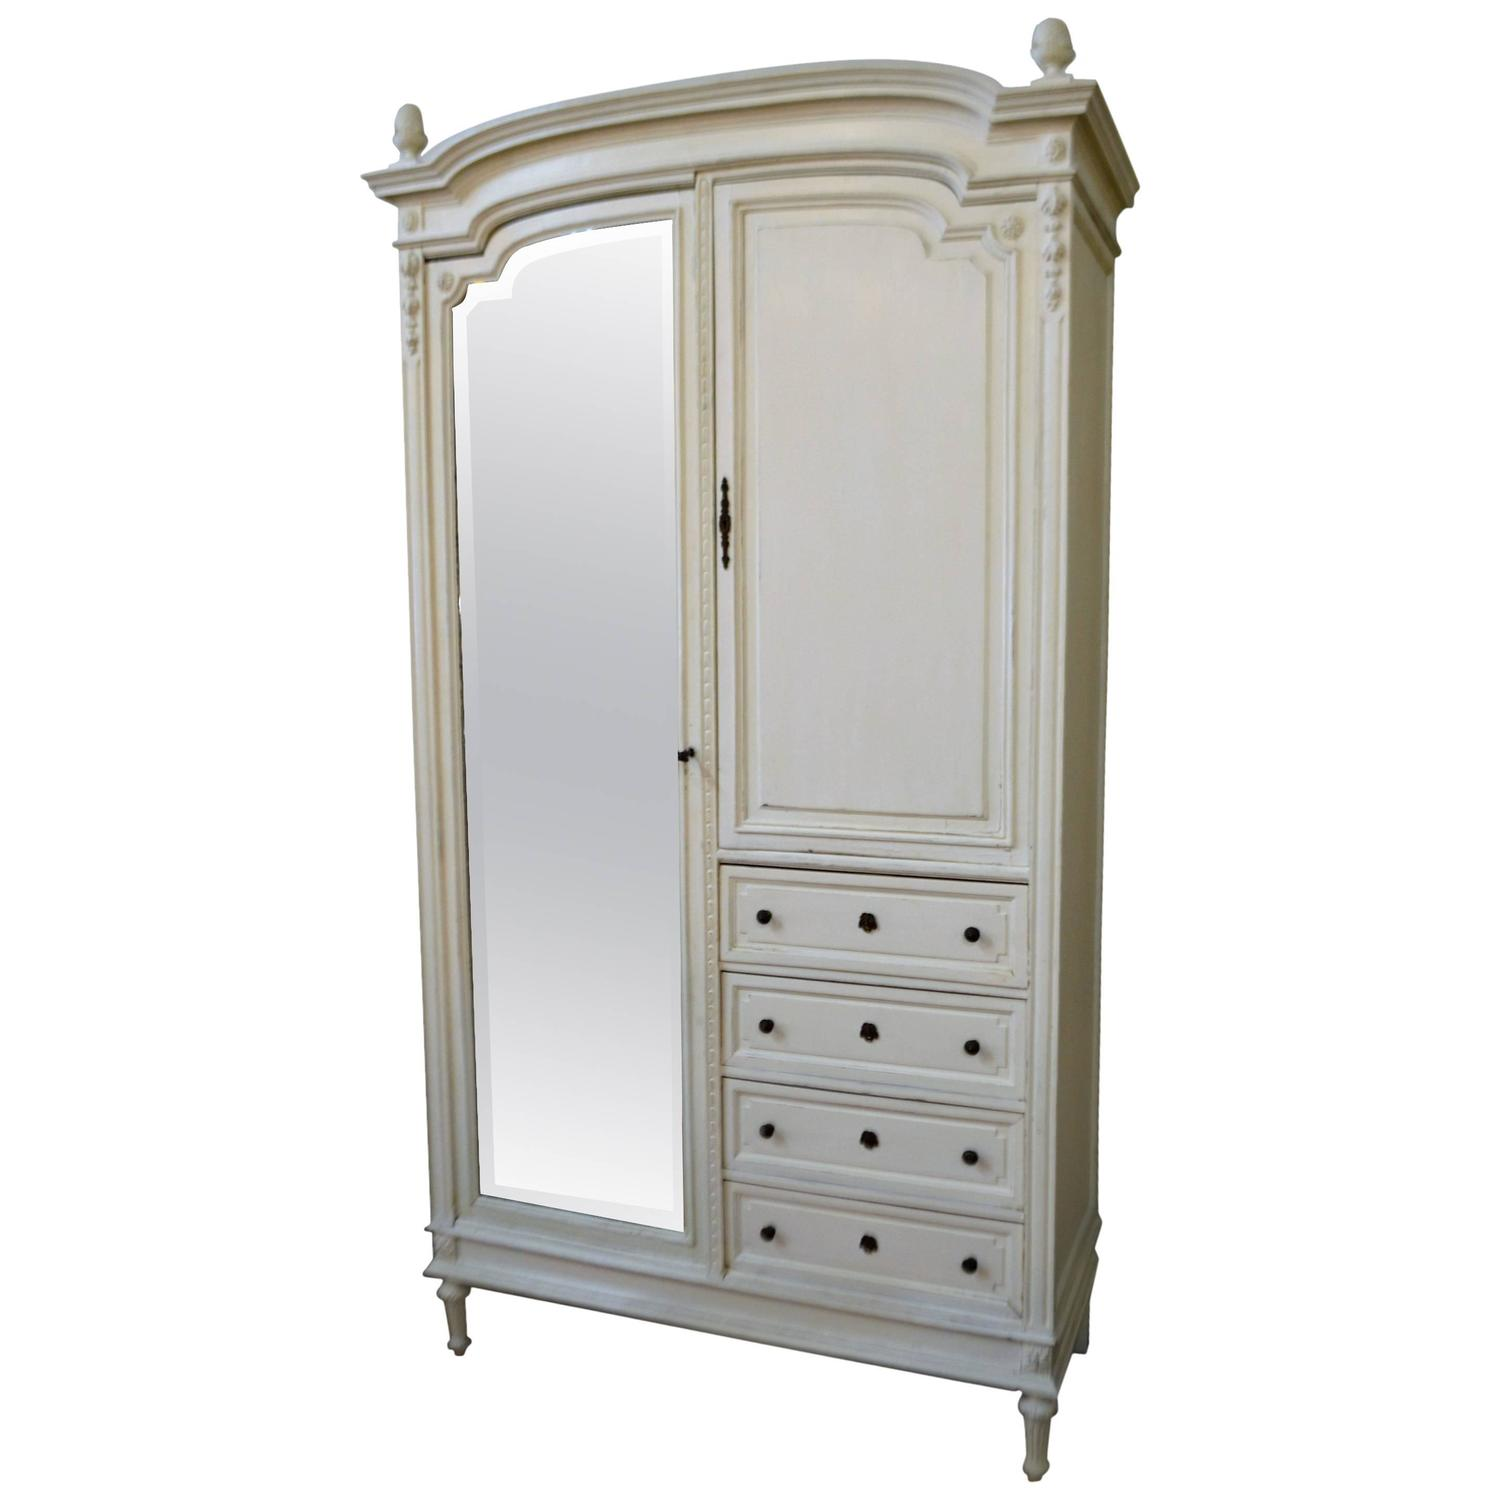 19th century louis xvi style painted armoire at 1stdibs. Black Bedroom Furniture Sets. Home Design Ideas